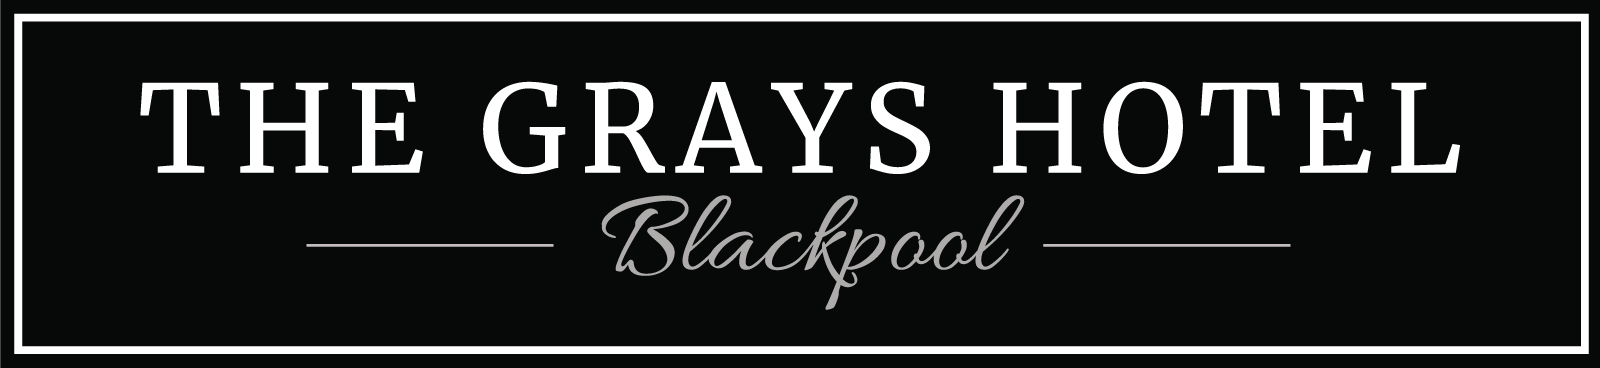 The Grays Hotel Blackpool